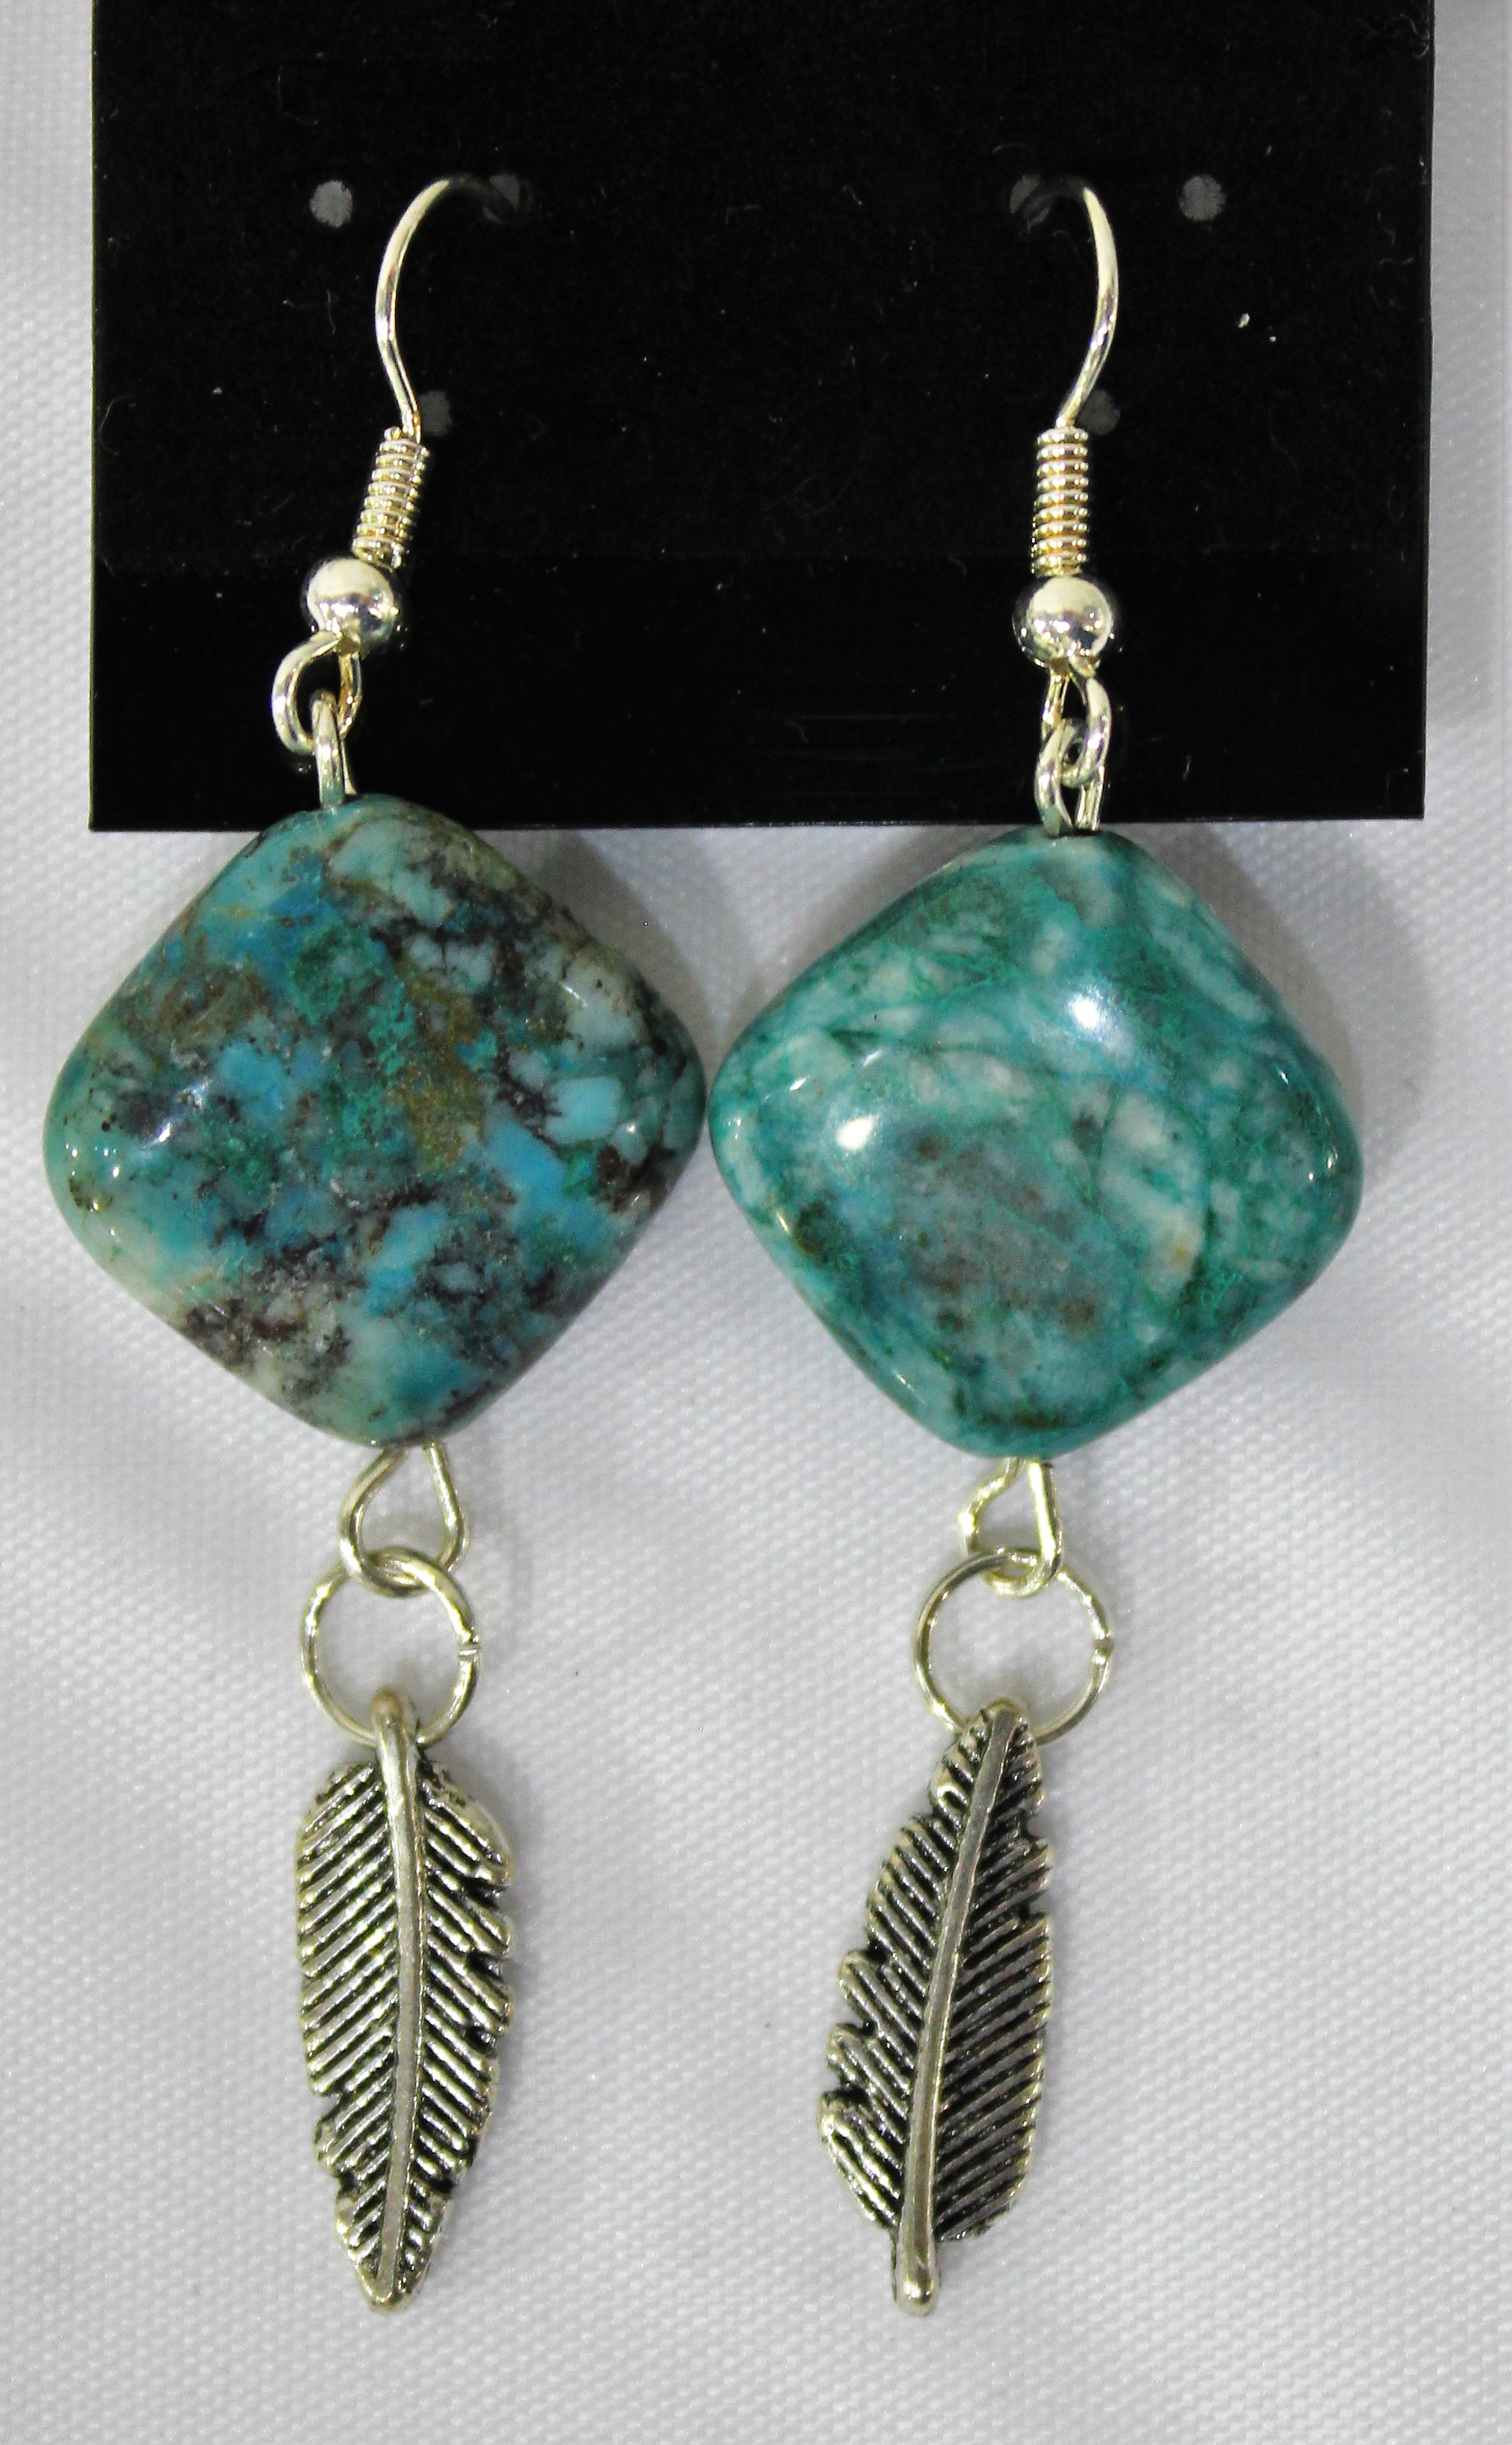 Chrysacolla Earrings, by Lucy Young